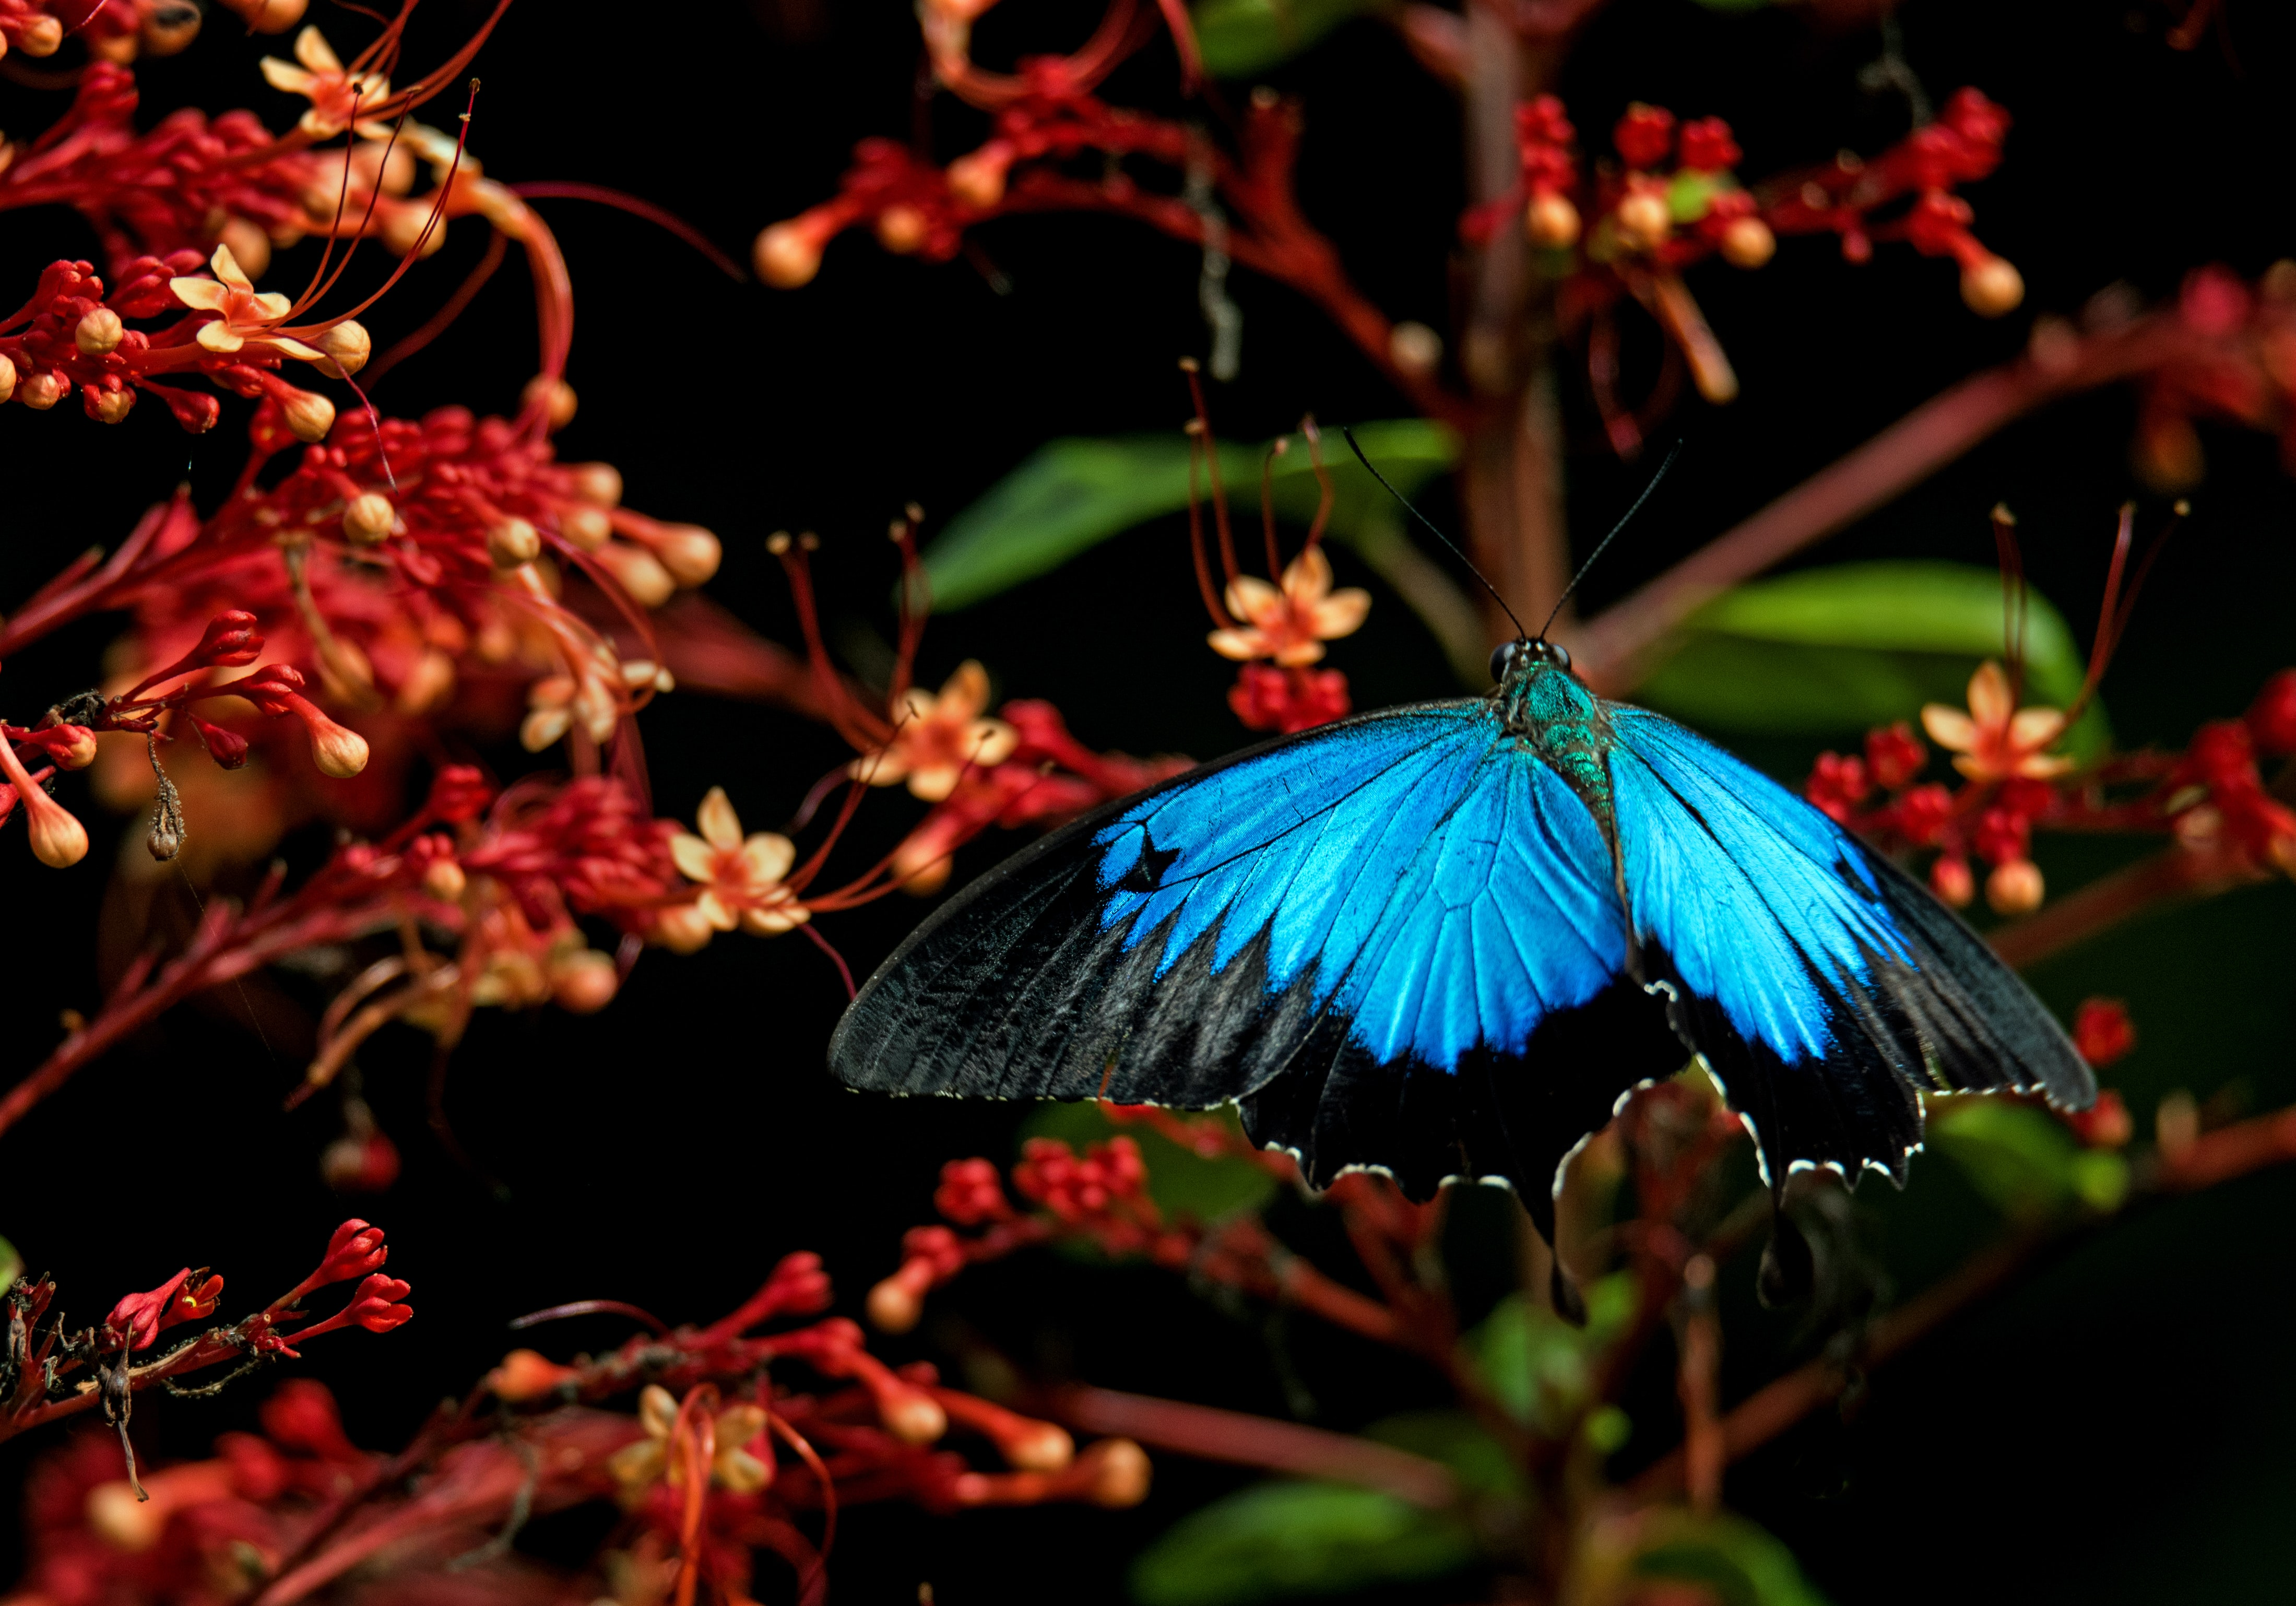 blue morpho butterfly during daytime